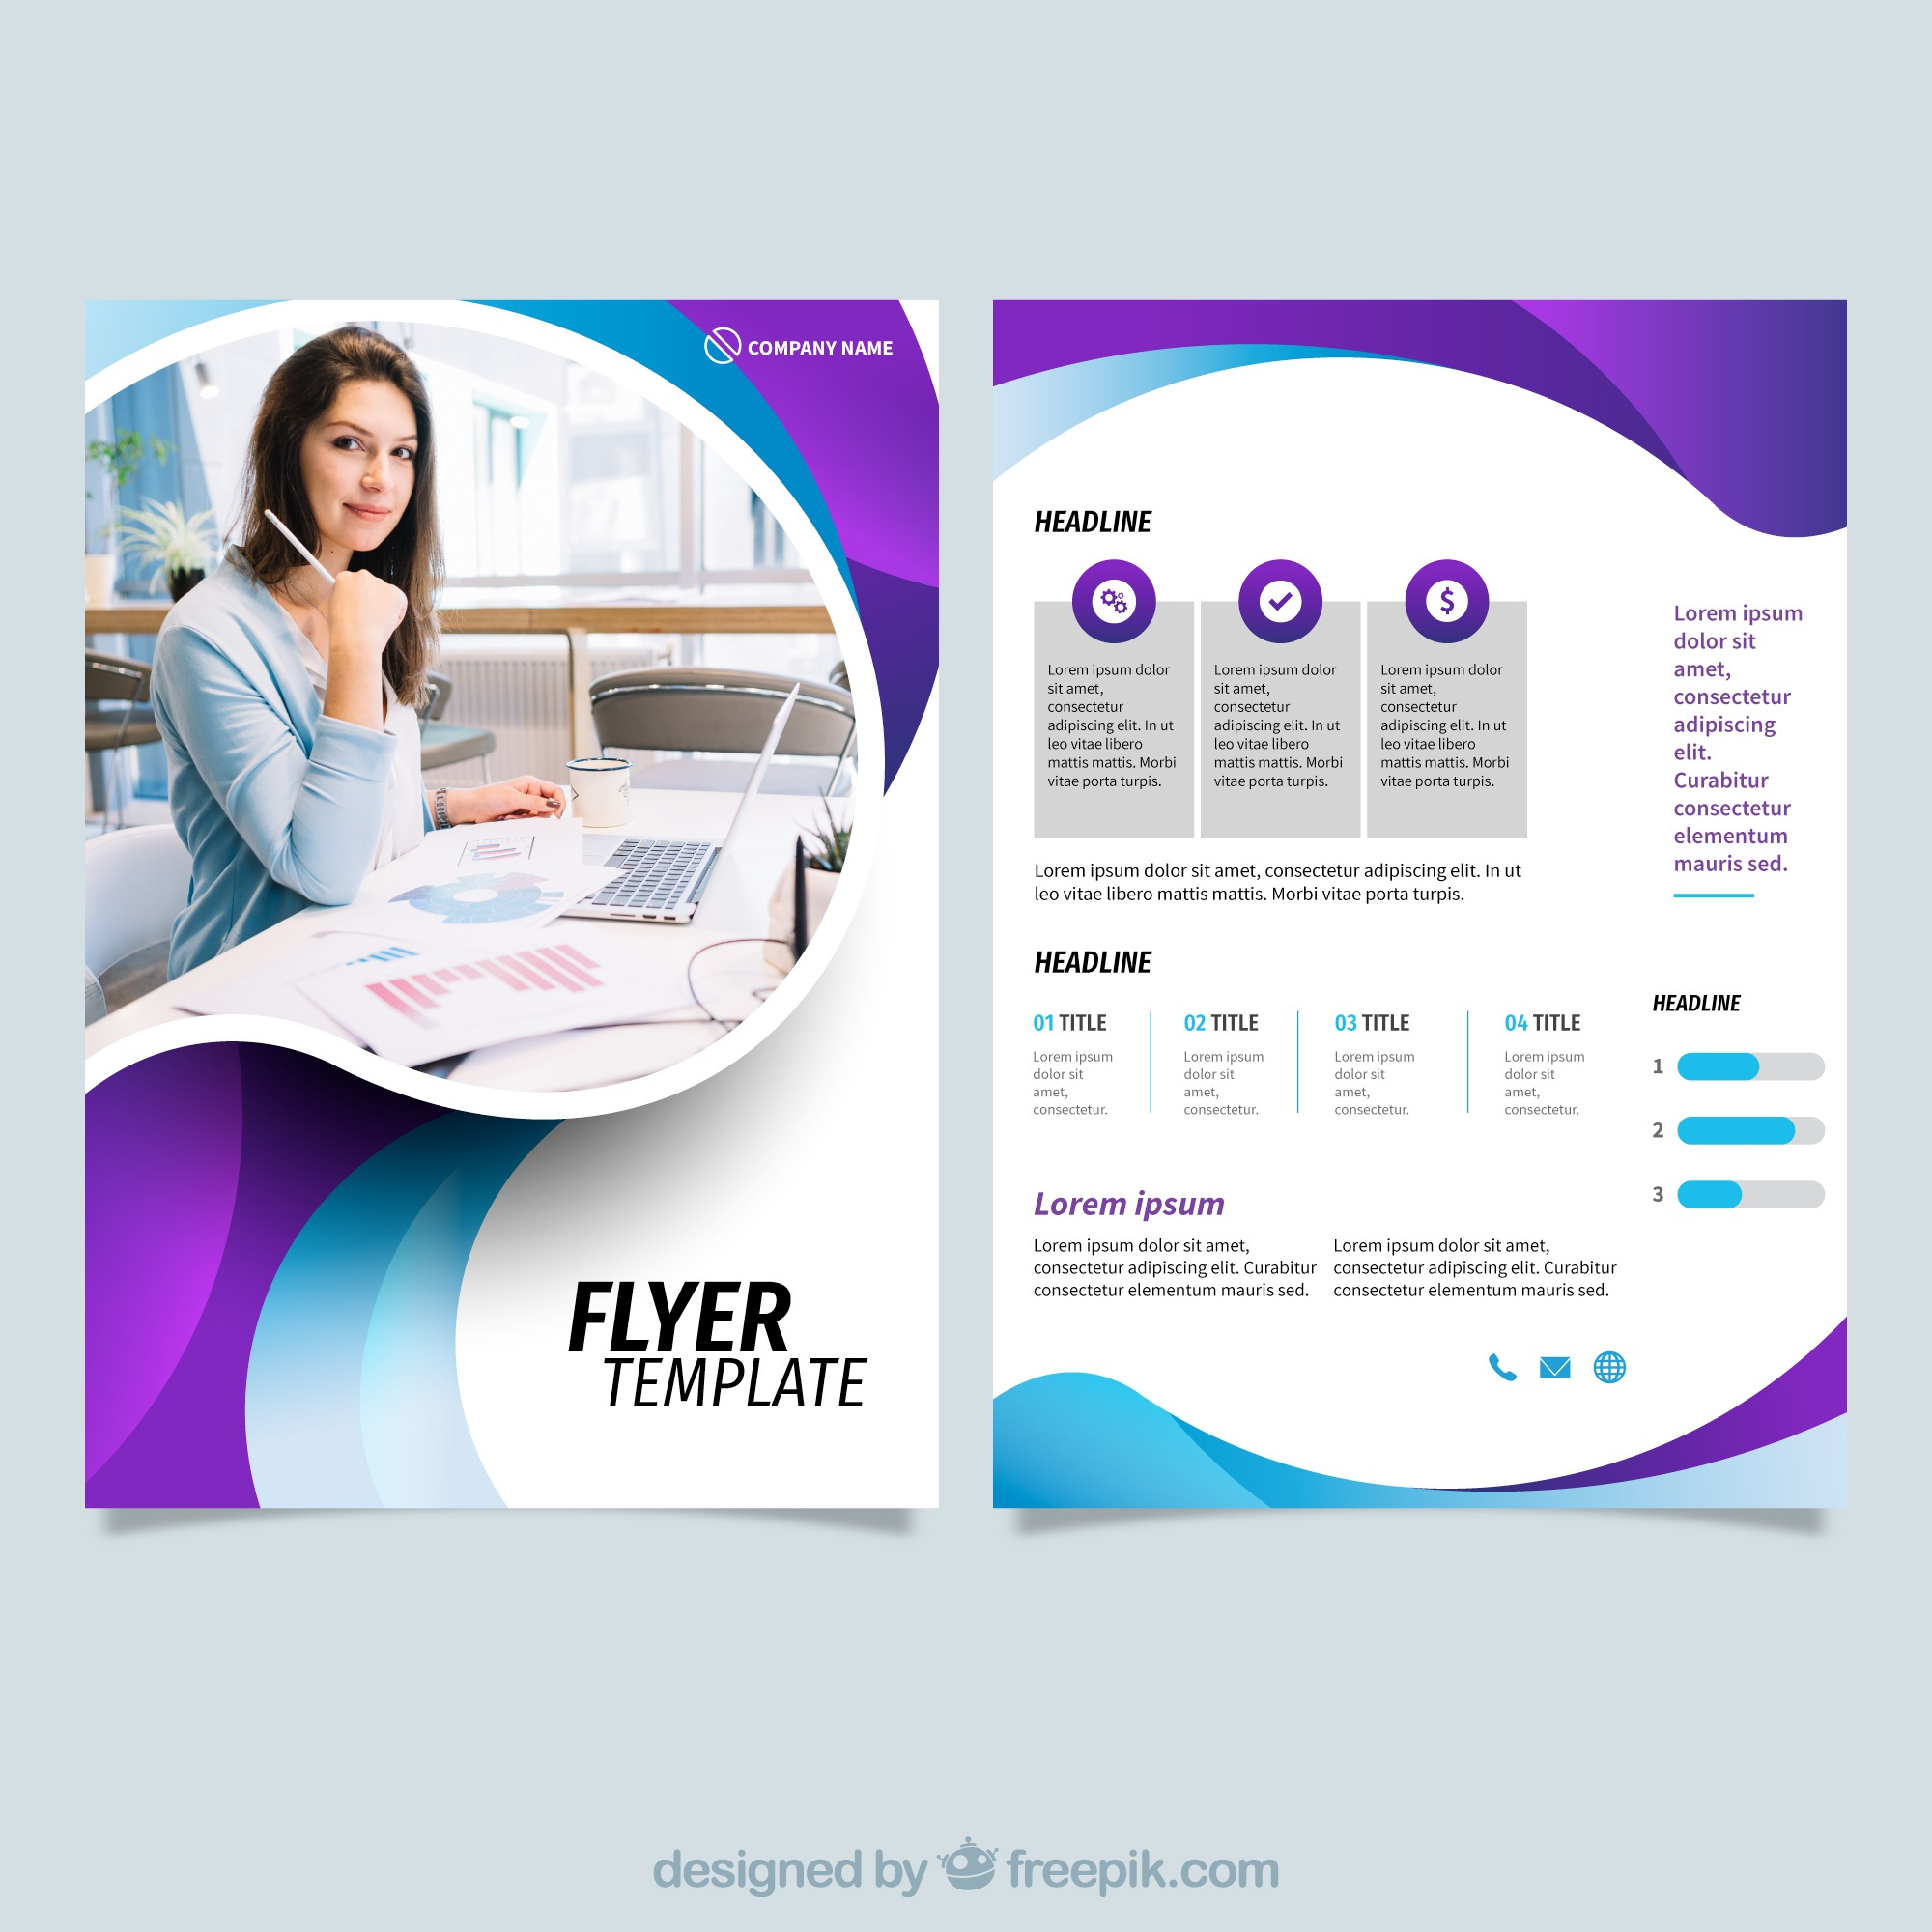 Templates Vectors 294 200 Free Files In Ai Eps Format